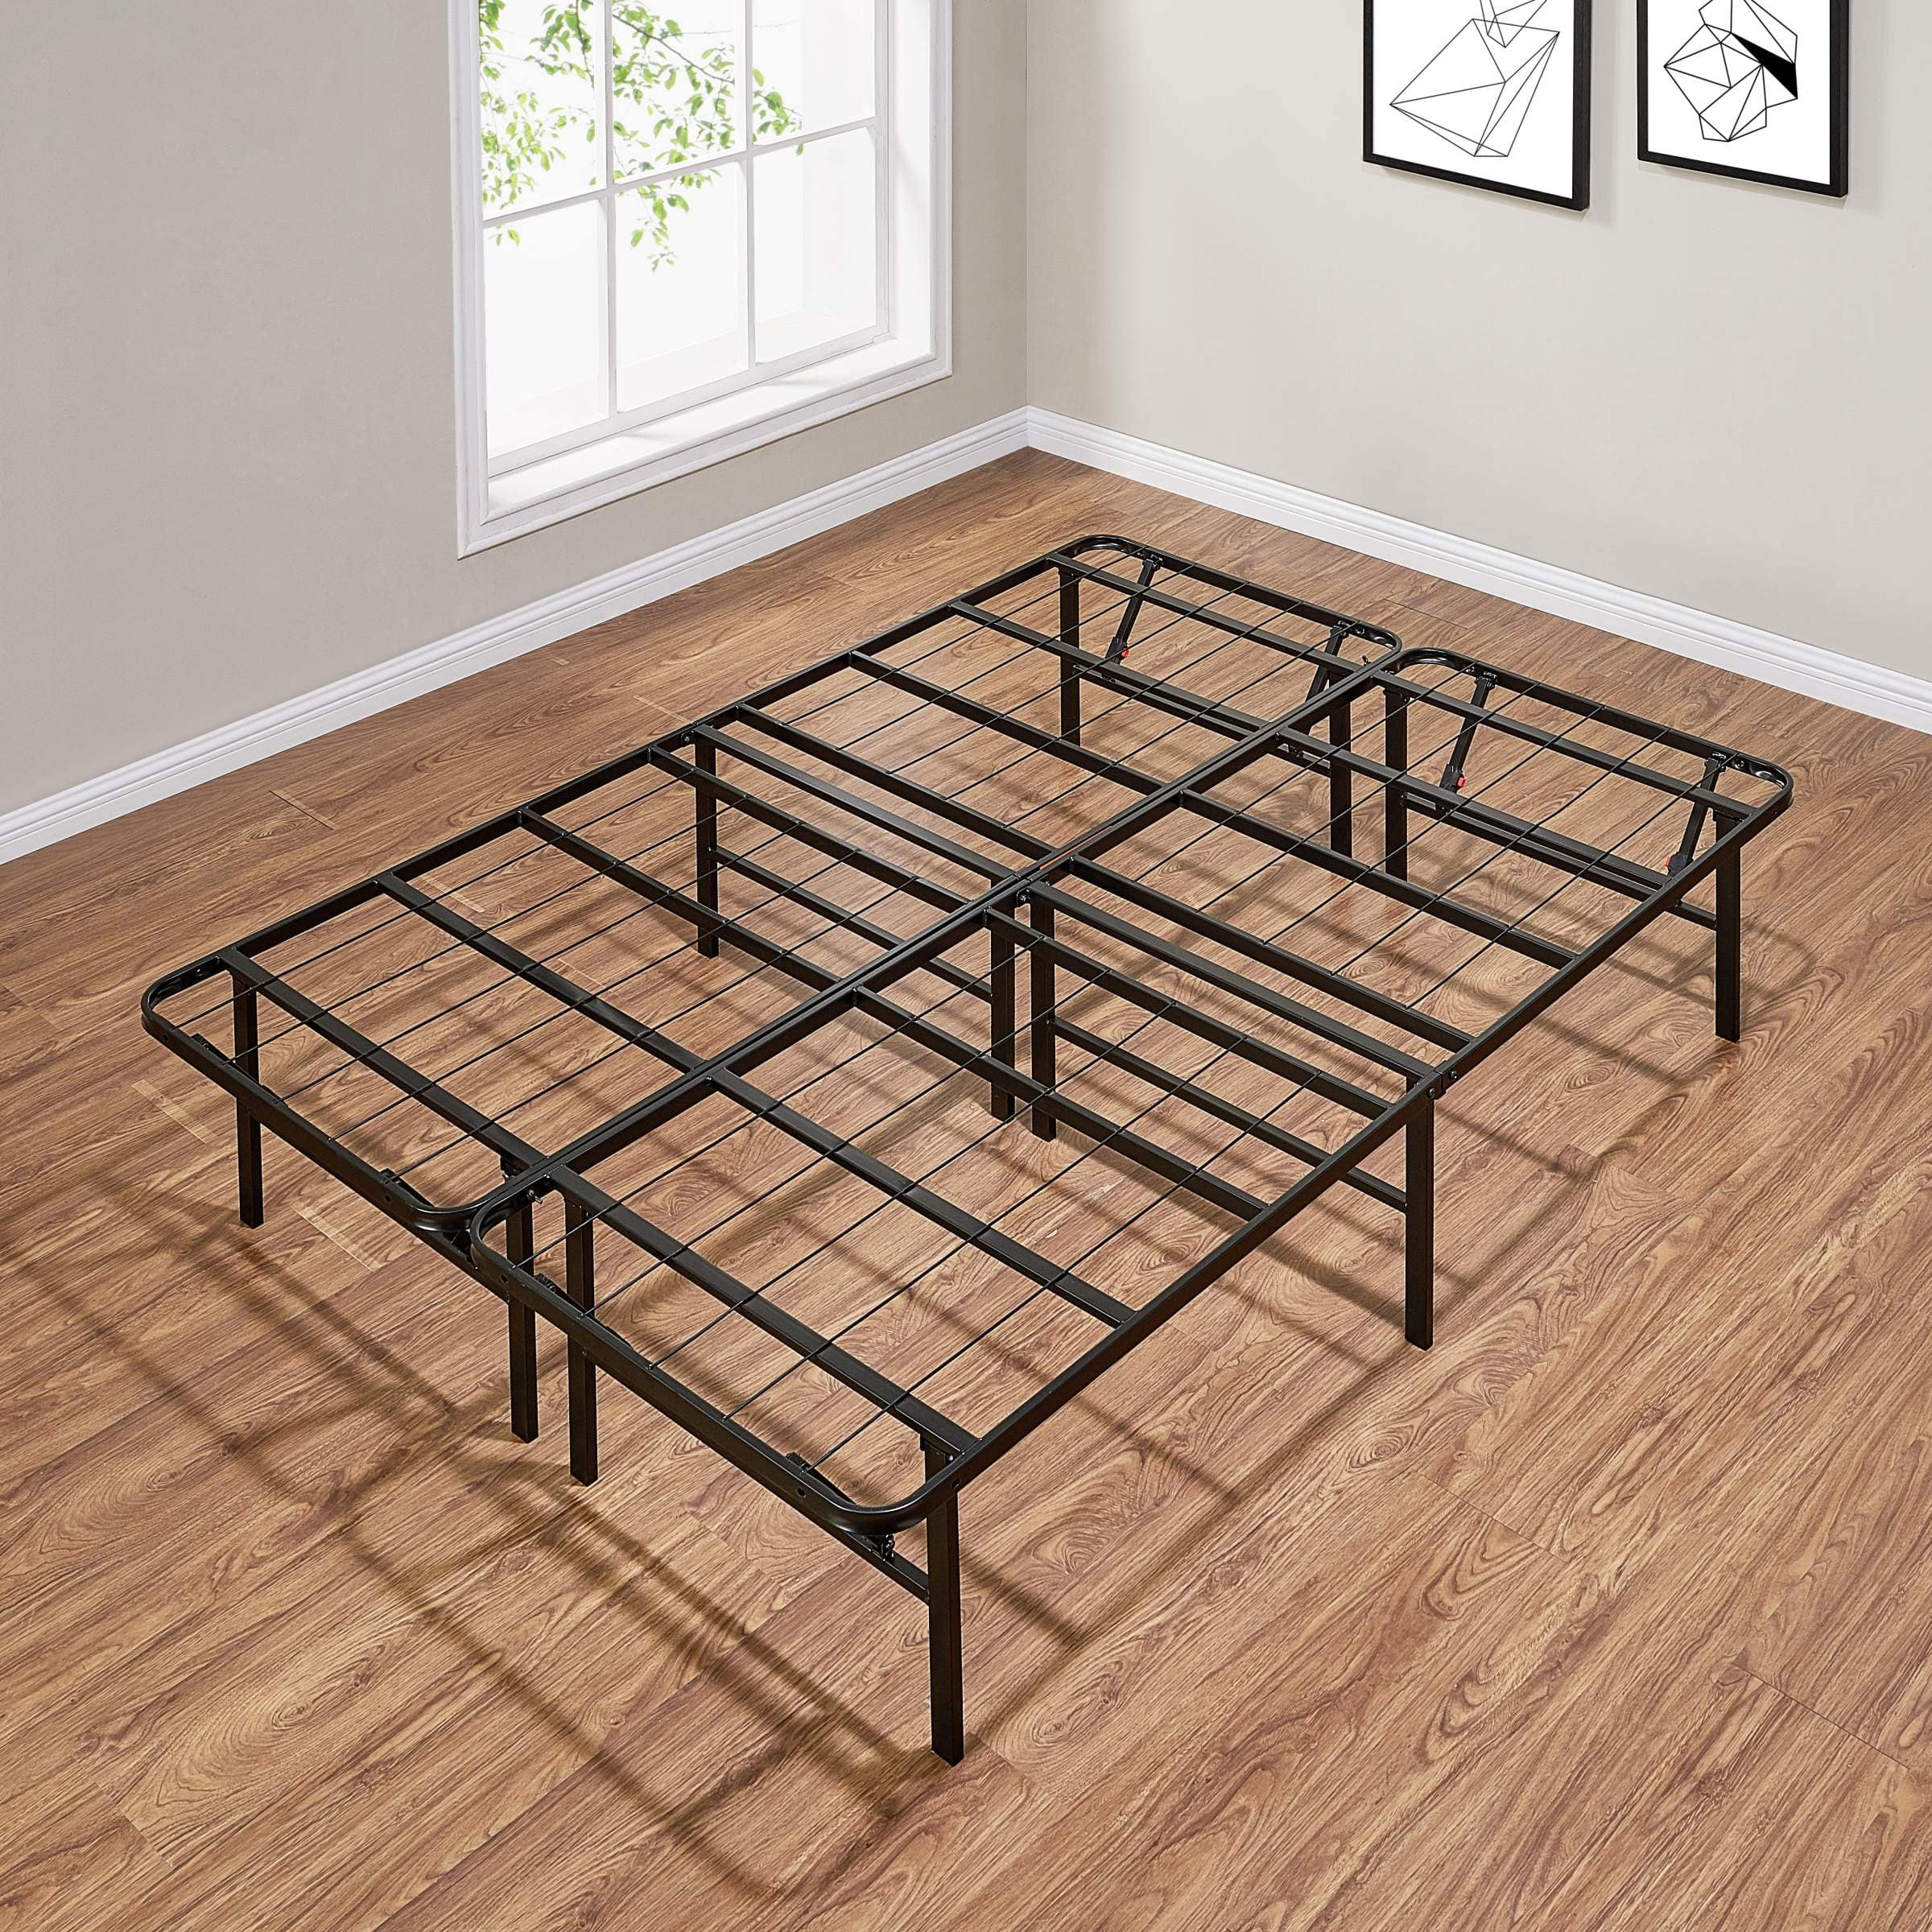 """Mainstays 14"""" High Profile Foldable Steel Bed Frame (full size) $55 + Free Shipping"""